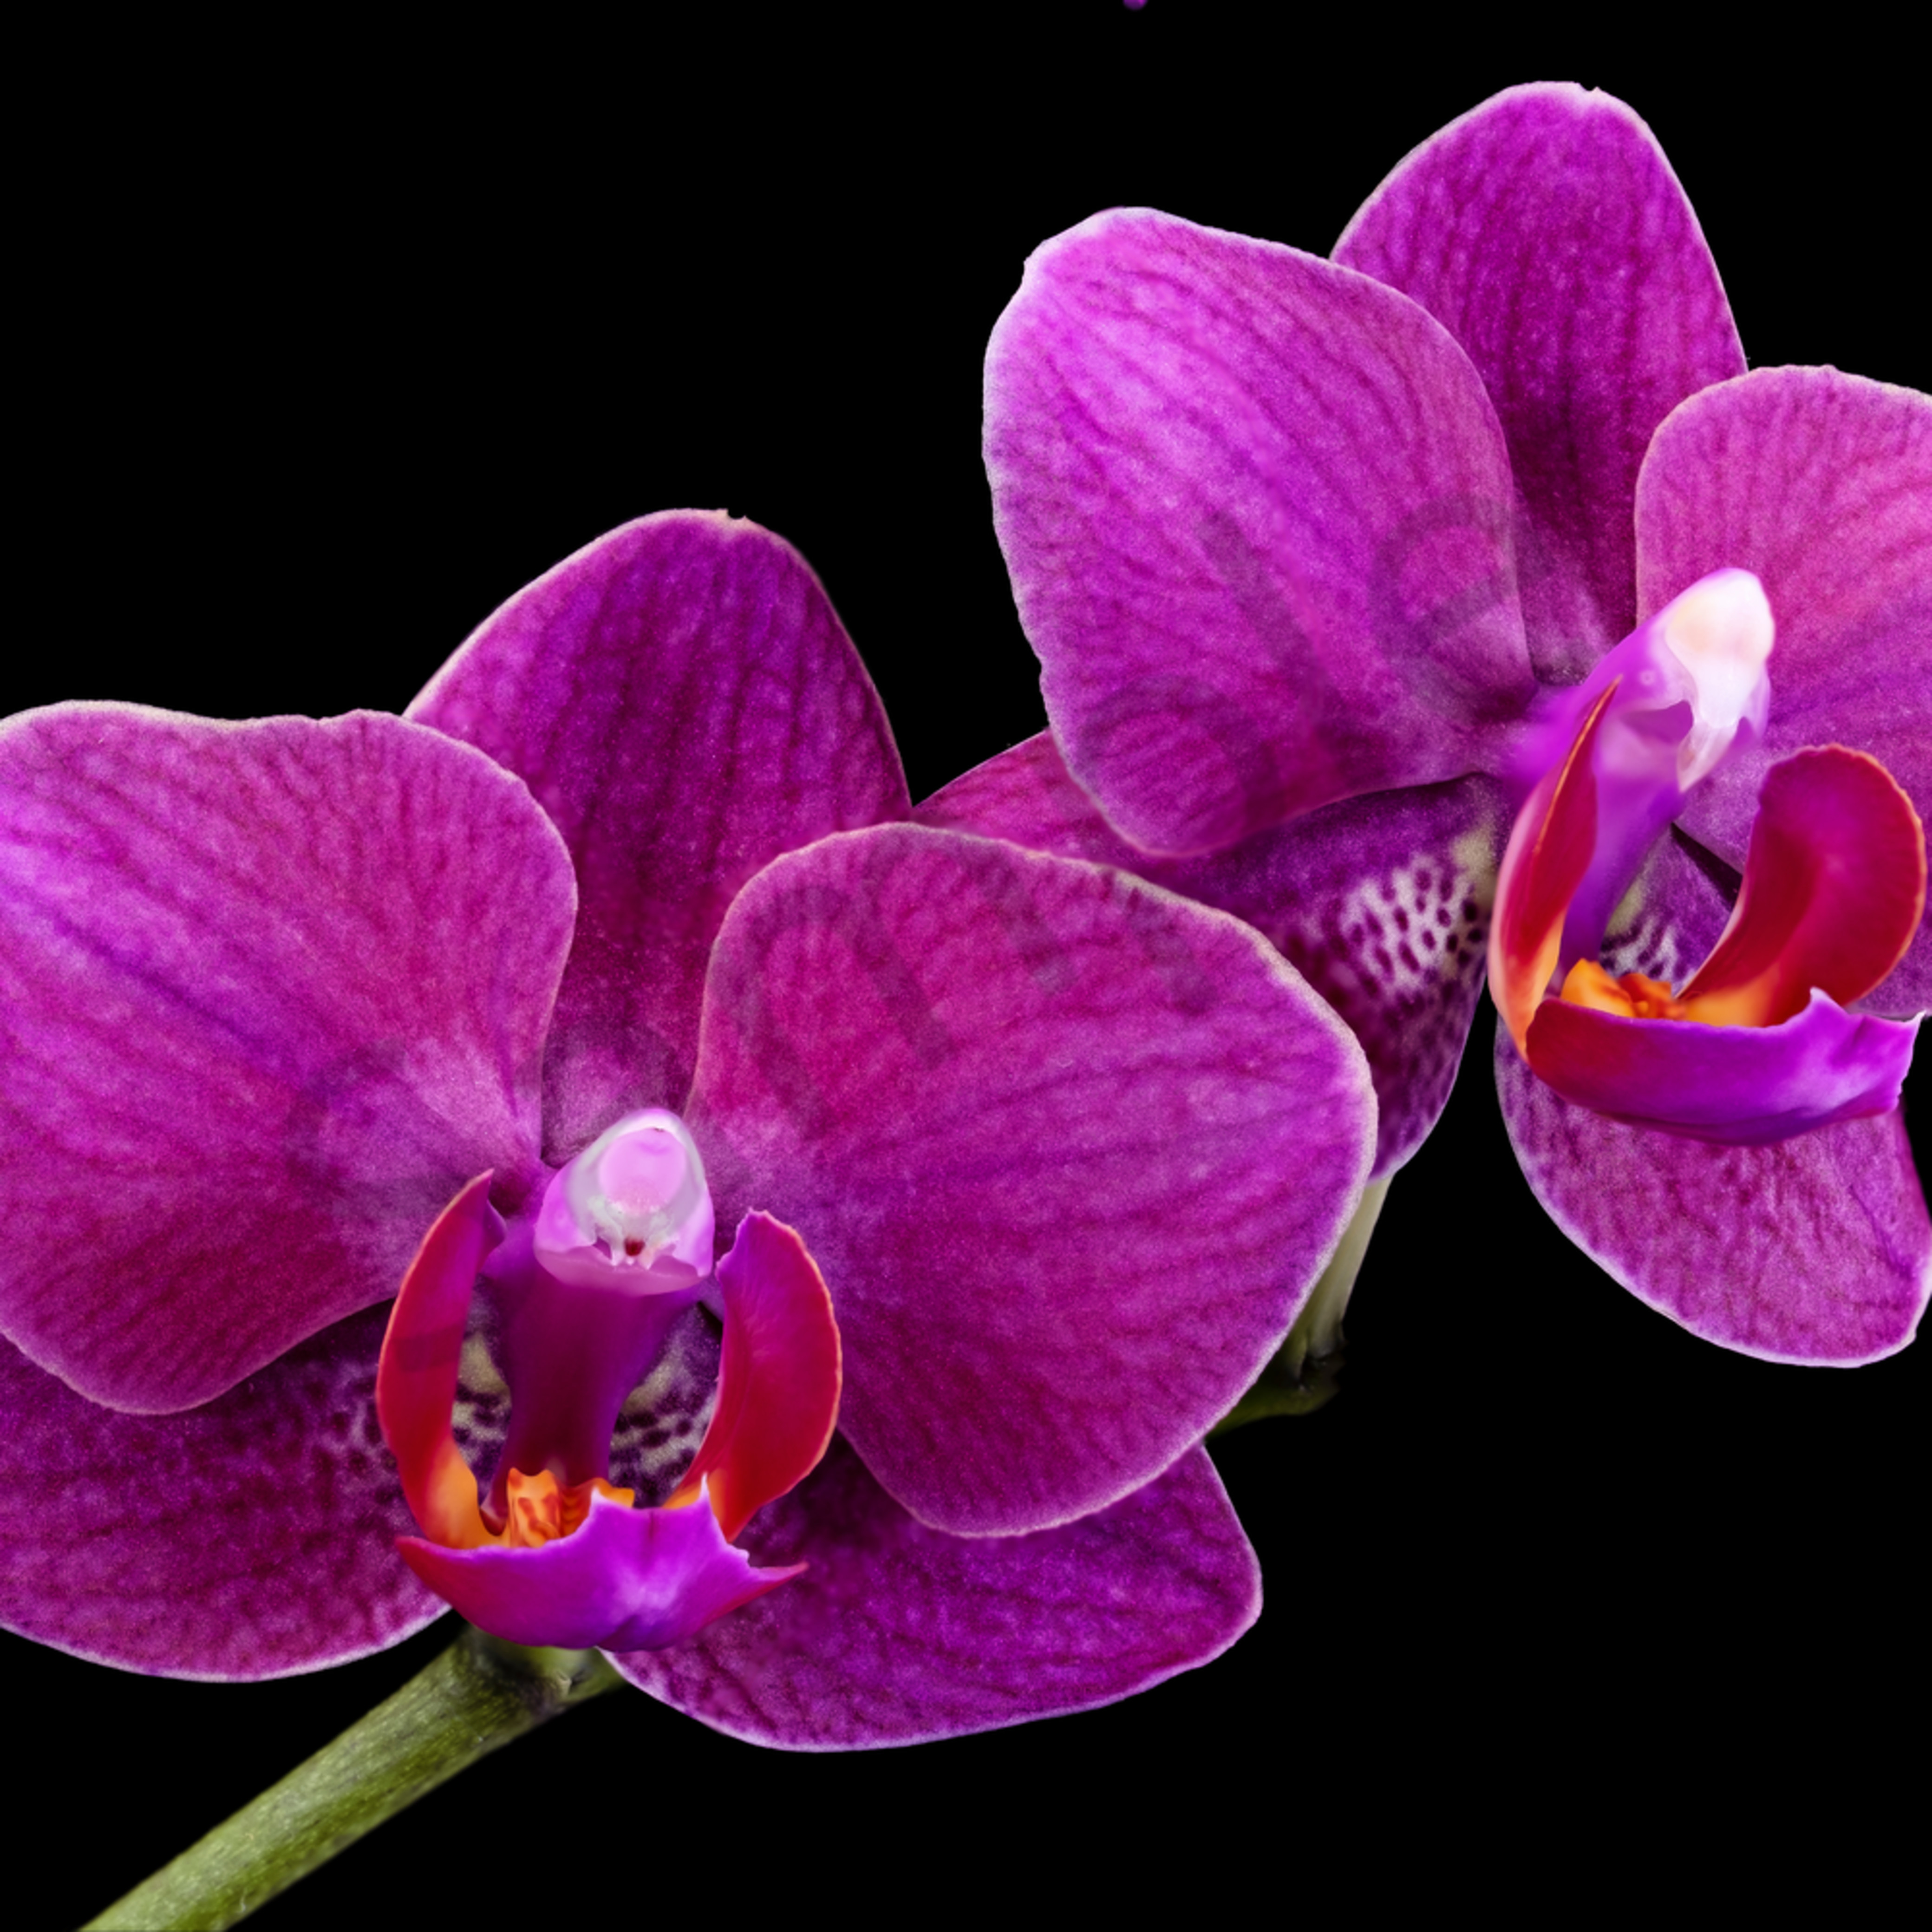 Two purple orchids aggsfj